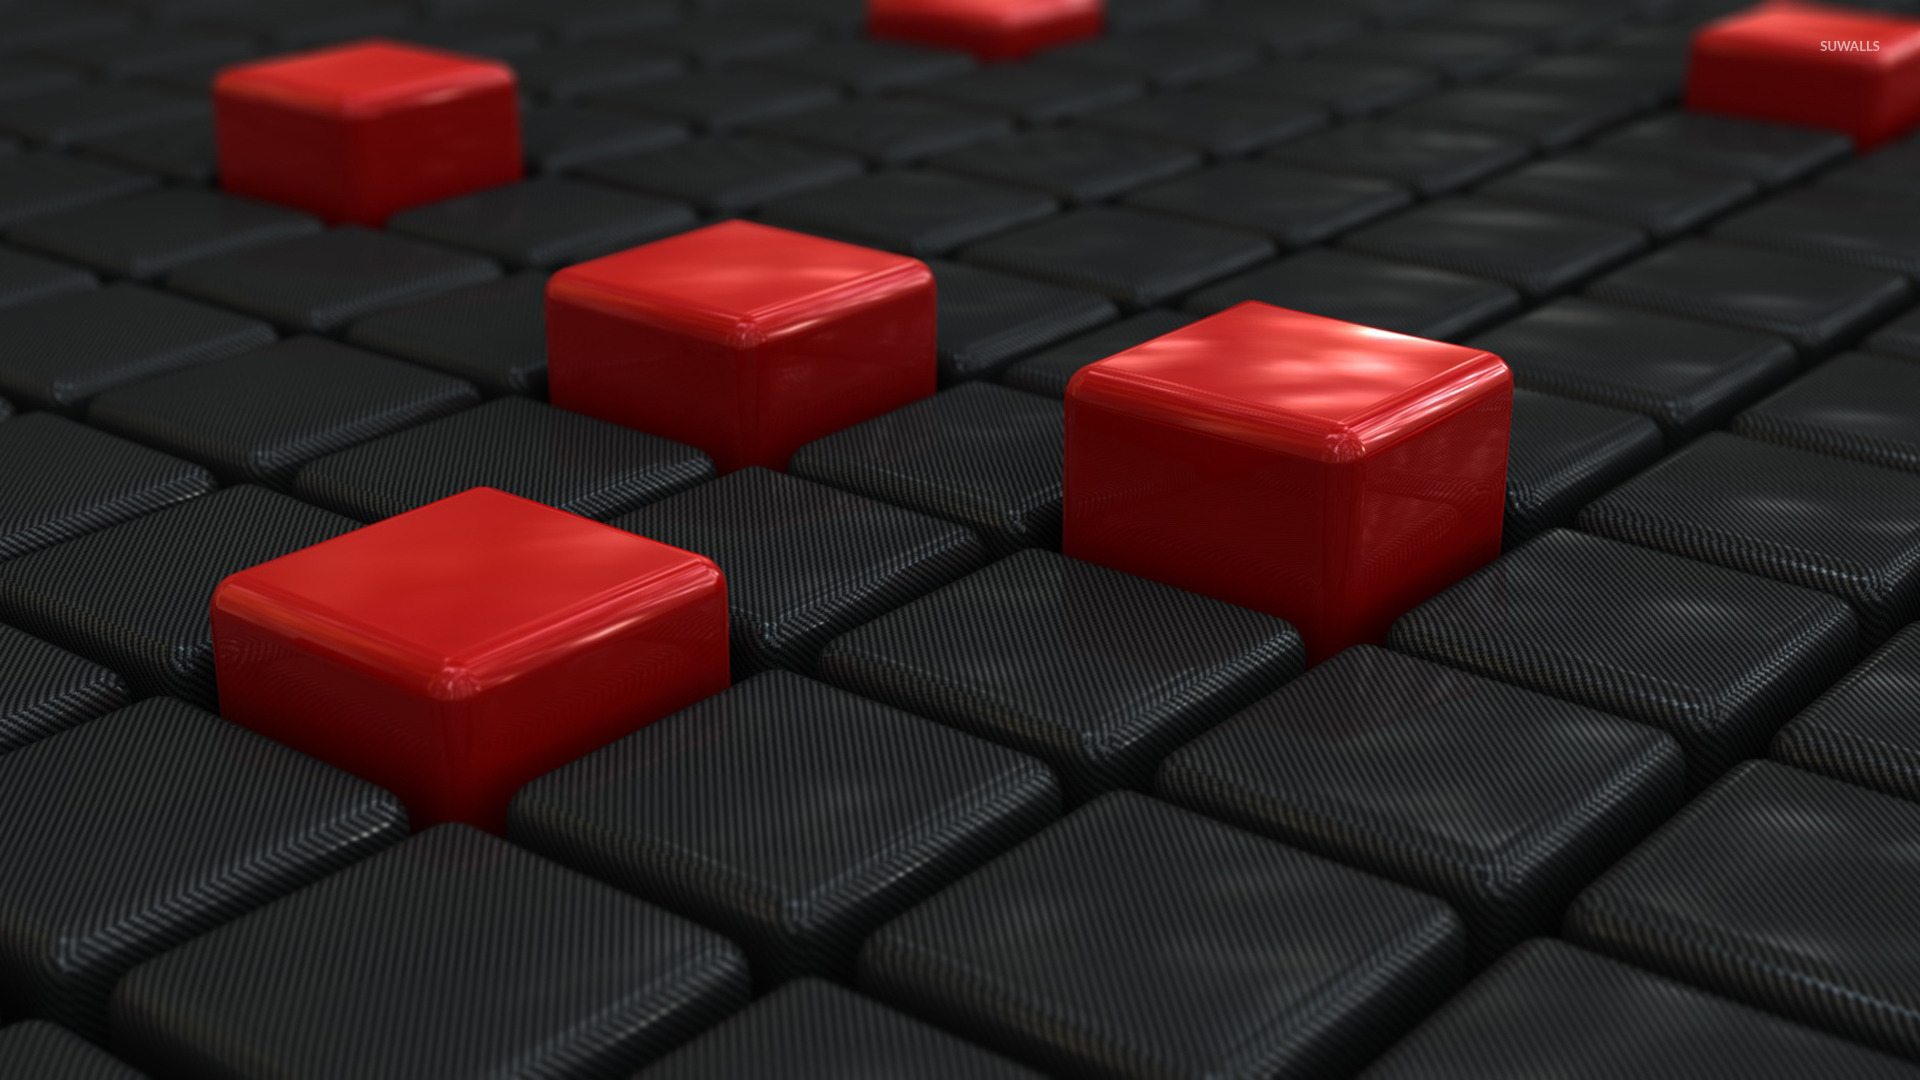 Black red cubes wallpaper 3d wallpapers 16687 for 3d wallpaper red